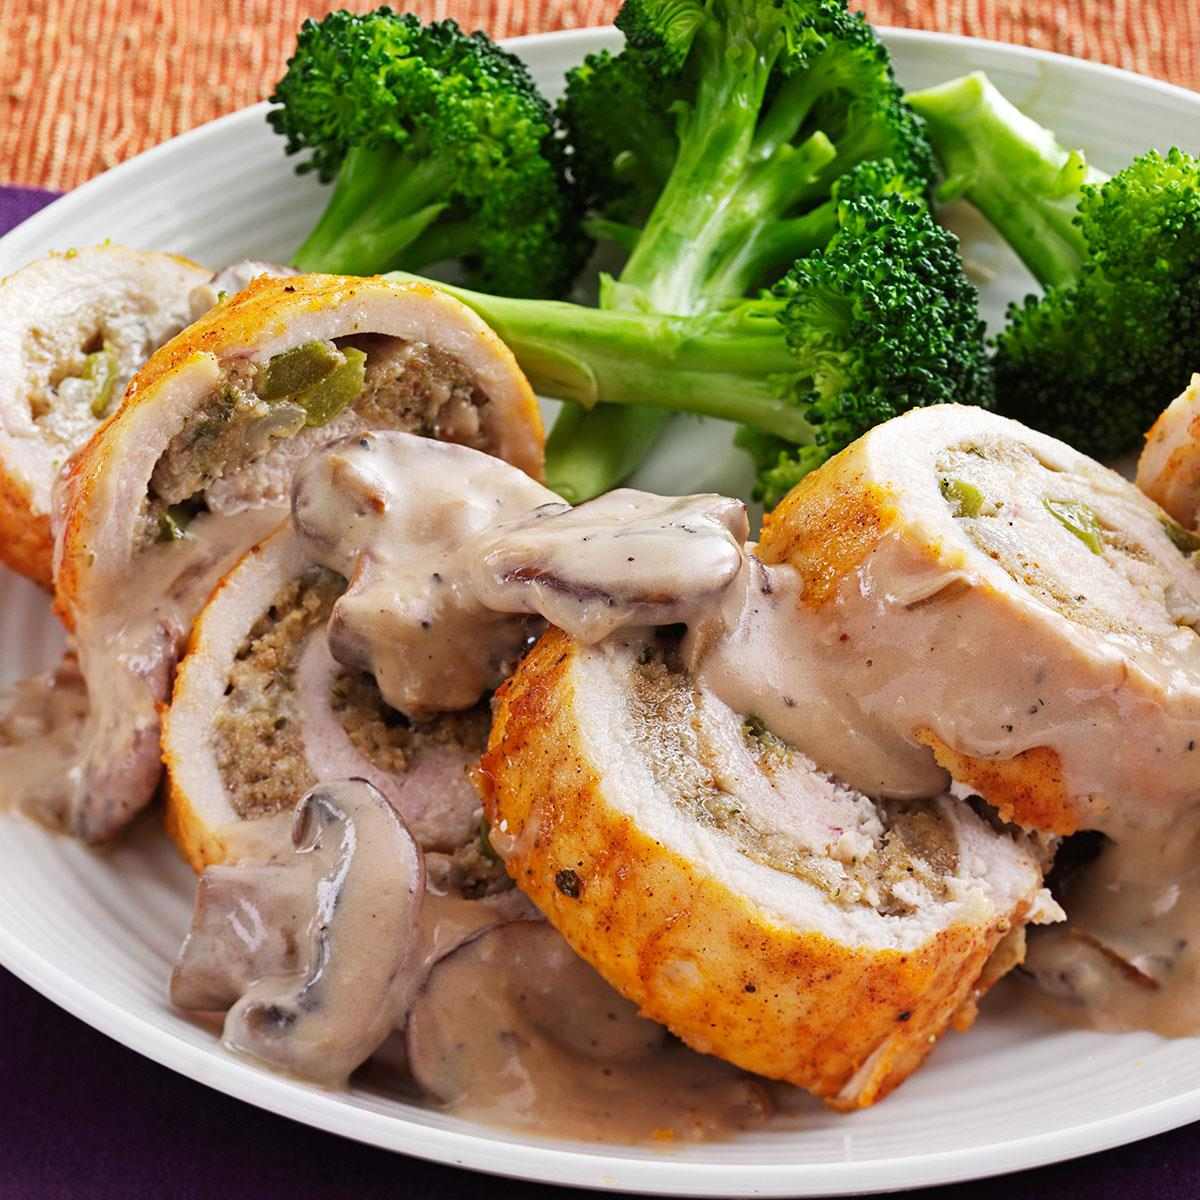 Makeover Stuffed Chicken Breasts With Mushroom Sauce